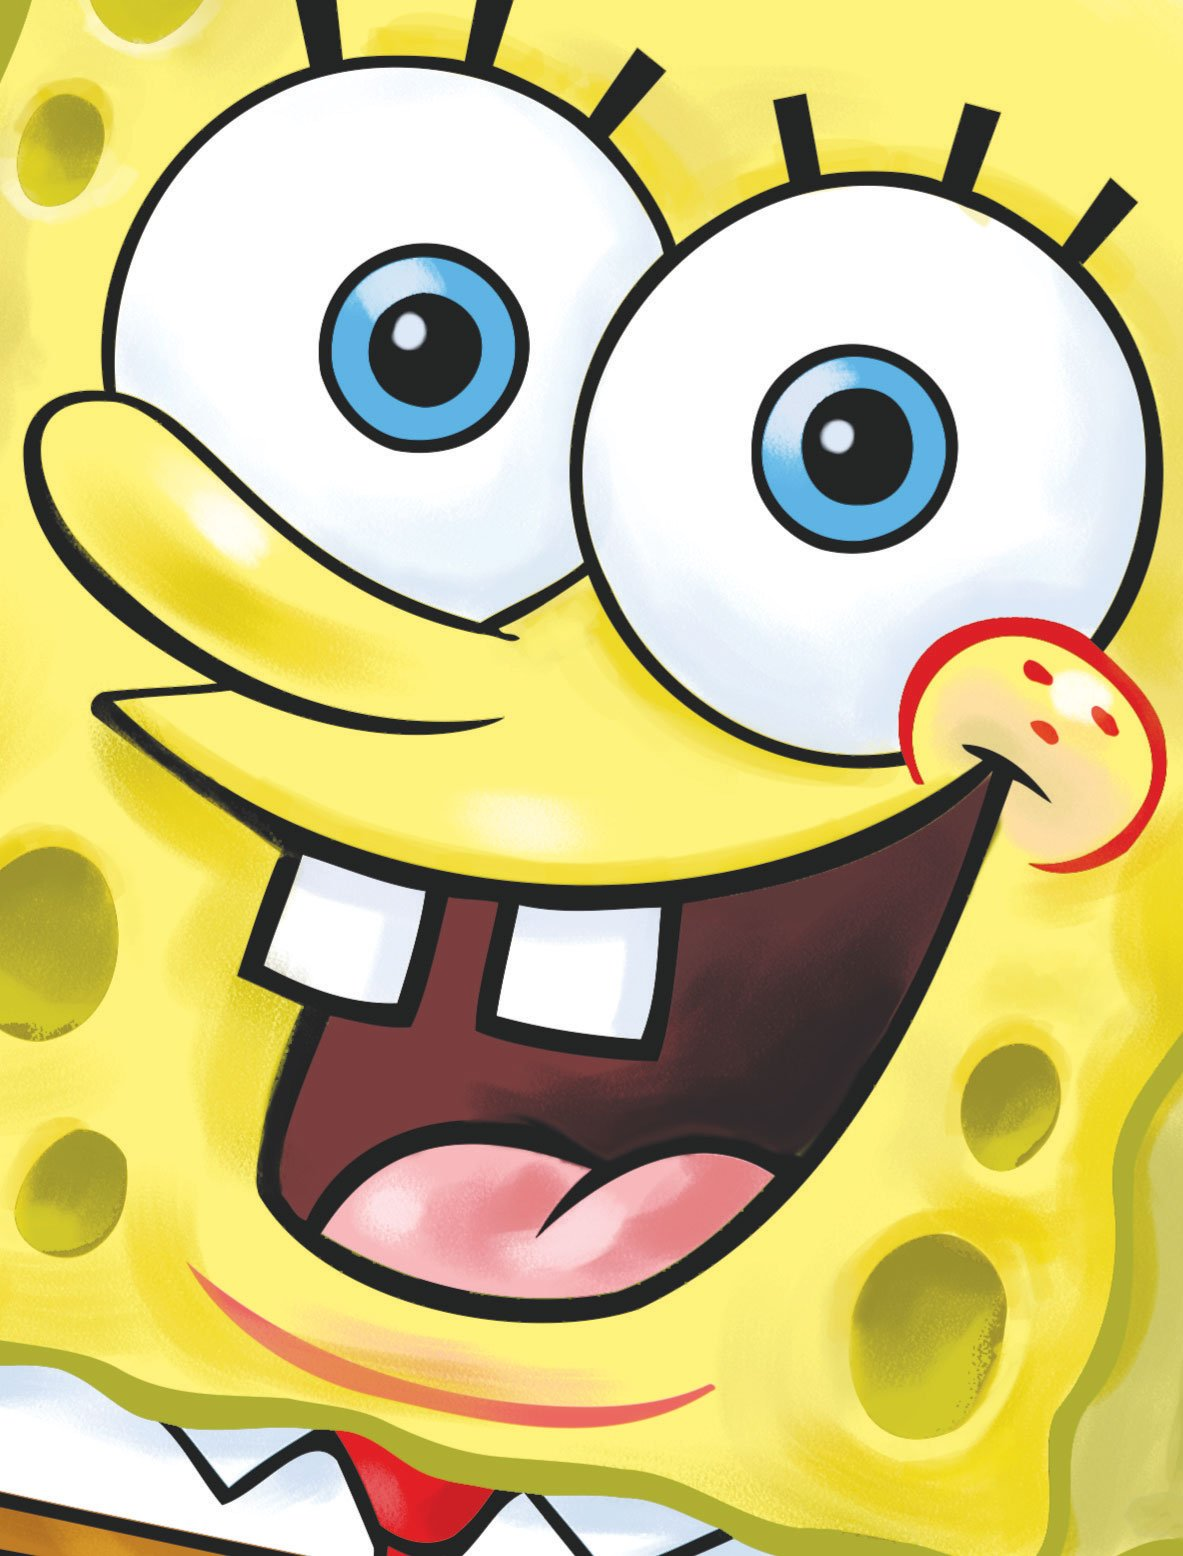 73 images about spongebob squarepants on we heart it see more